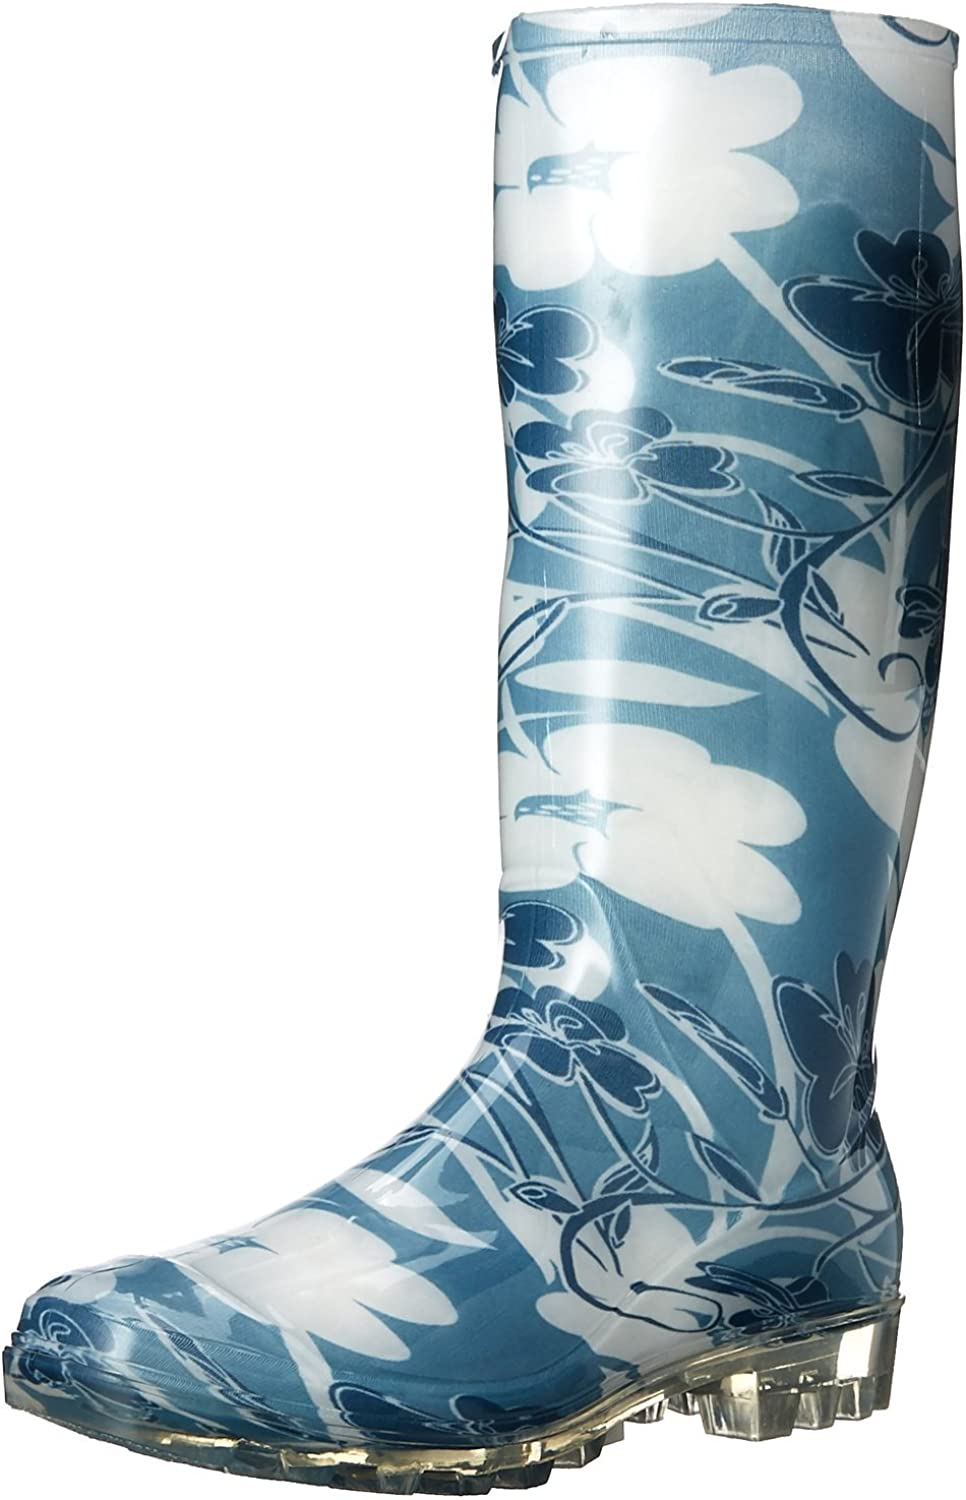 EasyUSA Women's Shiny Solid Black Rubber Rain and Garden Boot,5 B(M) US,bluee Floral